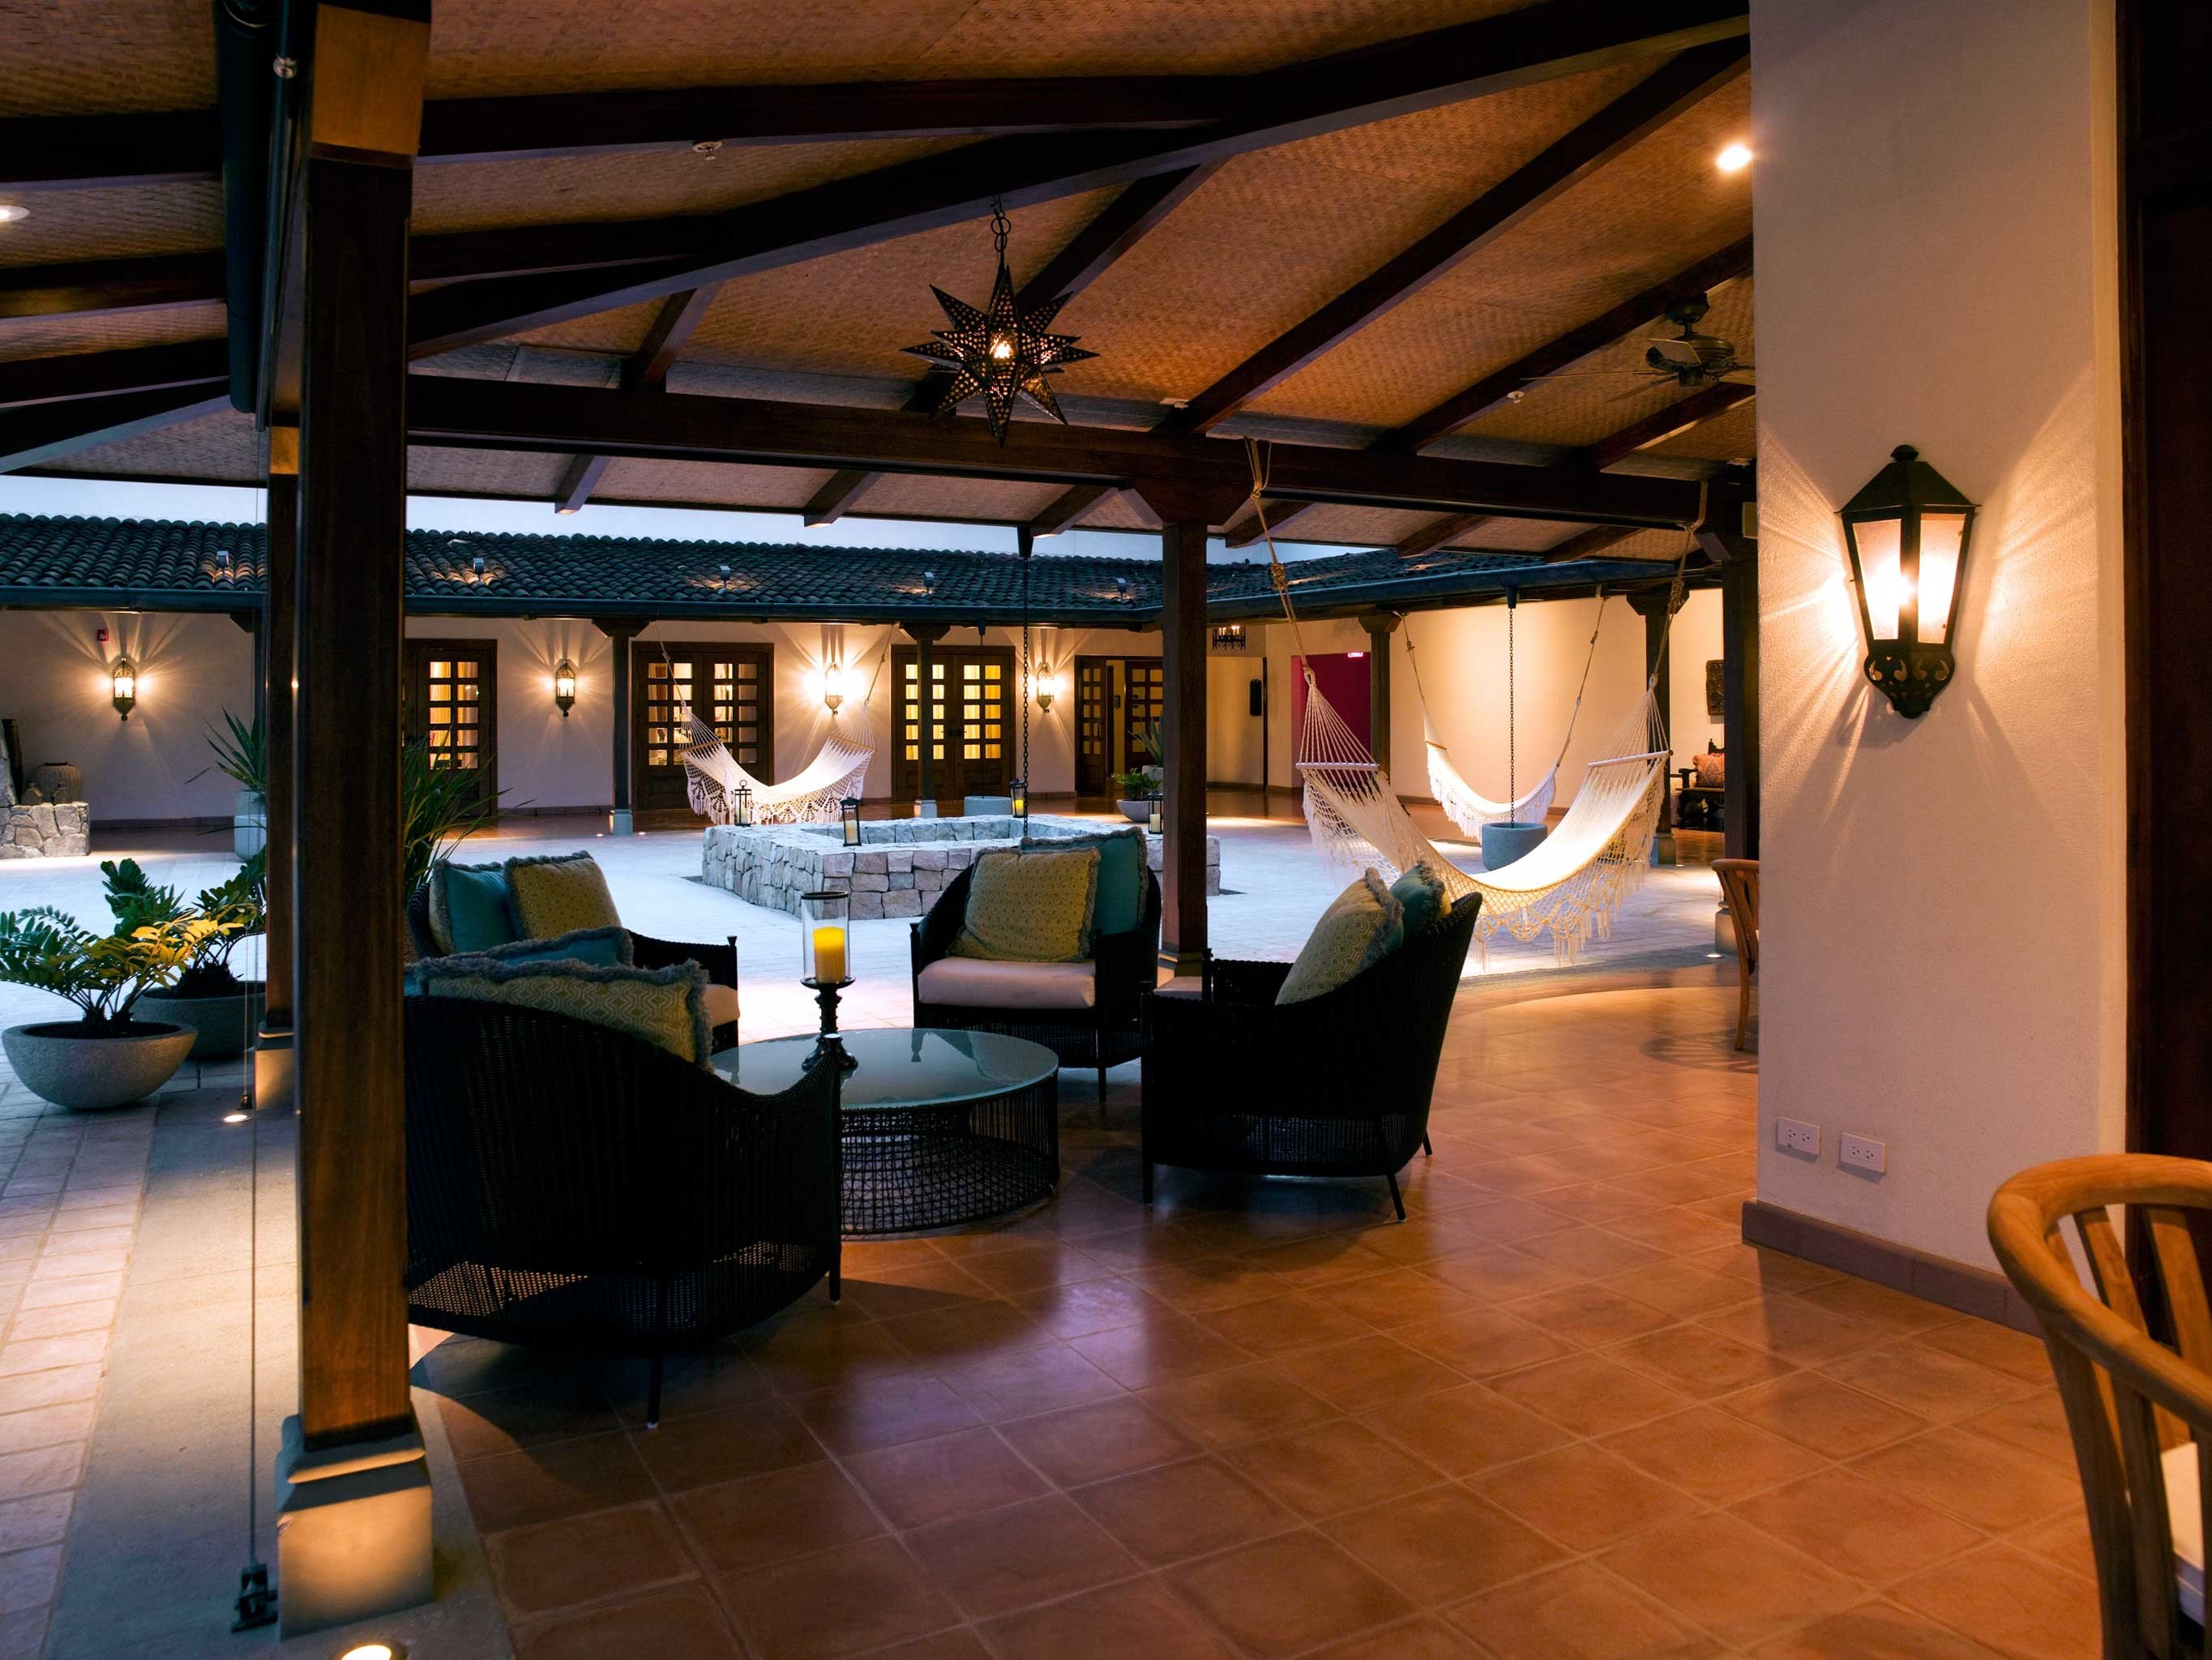 Beach Country Hip Hotels Lobby Lounge Modern property Resort home Suite living room